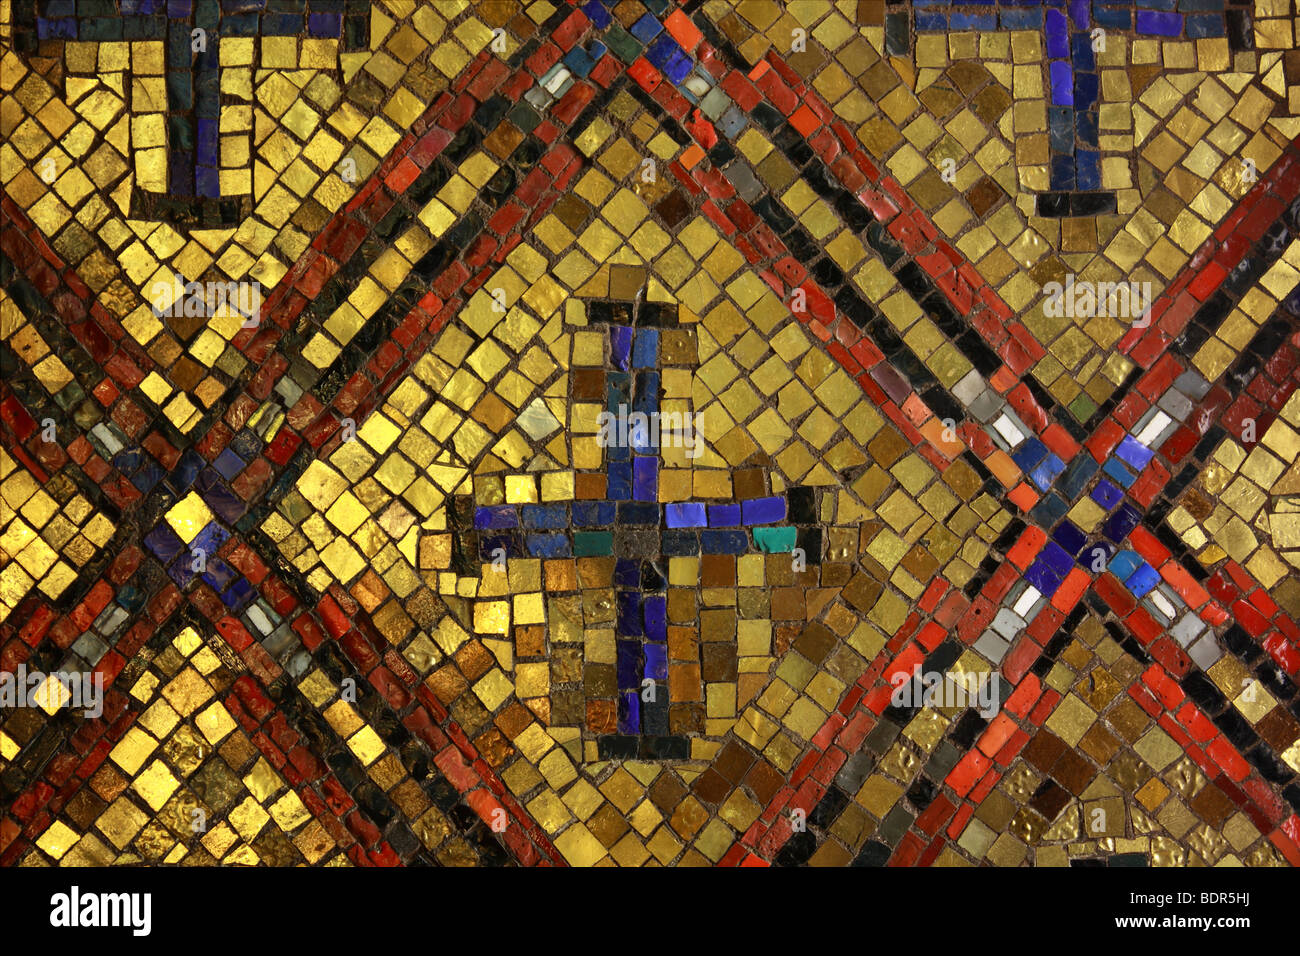 Old Byzantine style glass with gold mosaic tiles - Stock Image